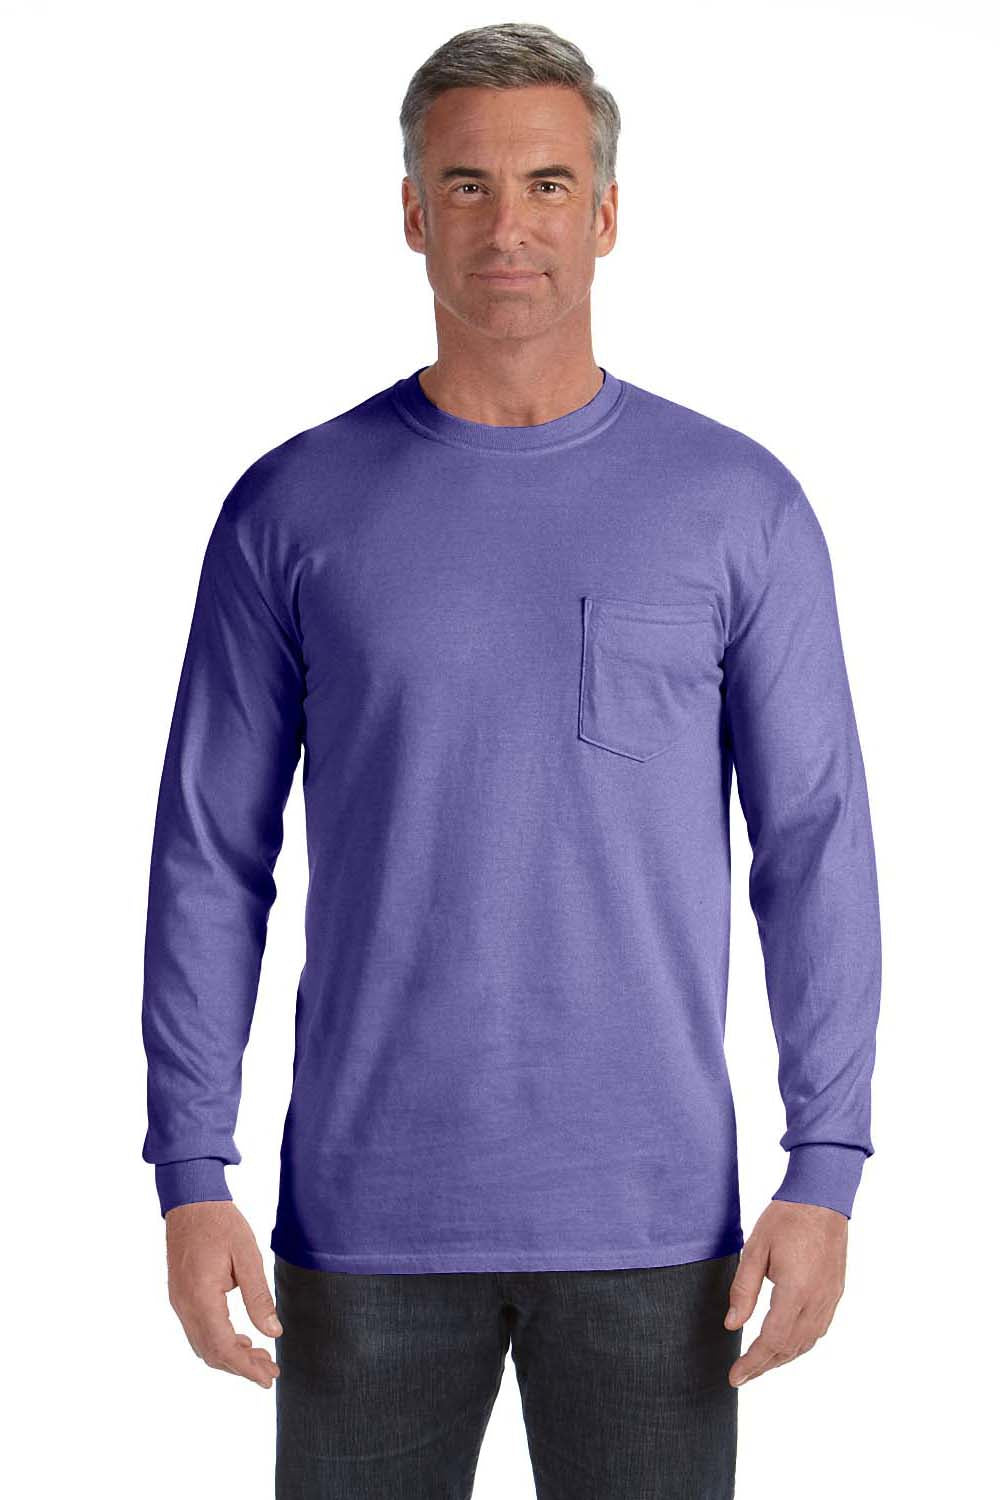 Comfort Colors C4410 Mens Long Sleeve Crewneck T-Shirt w/ Pocket Violet Purple Front